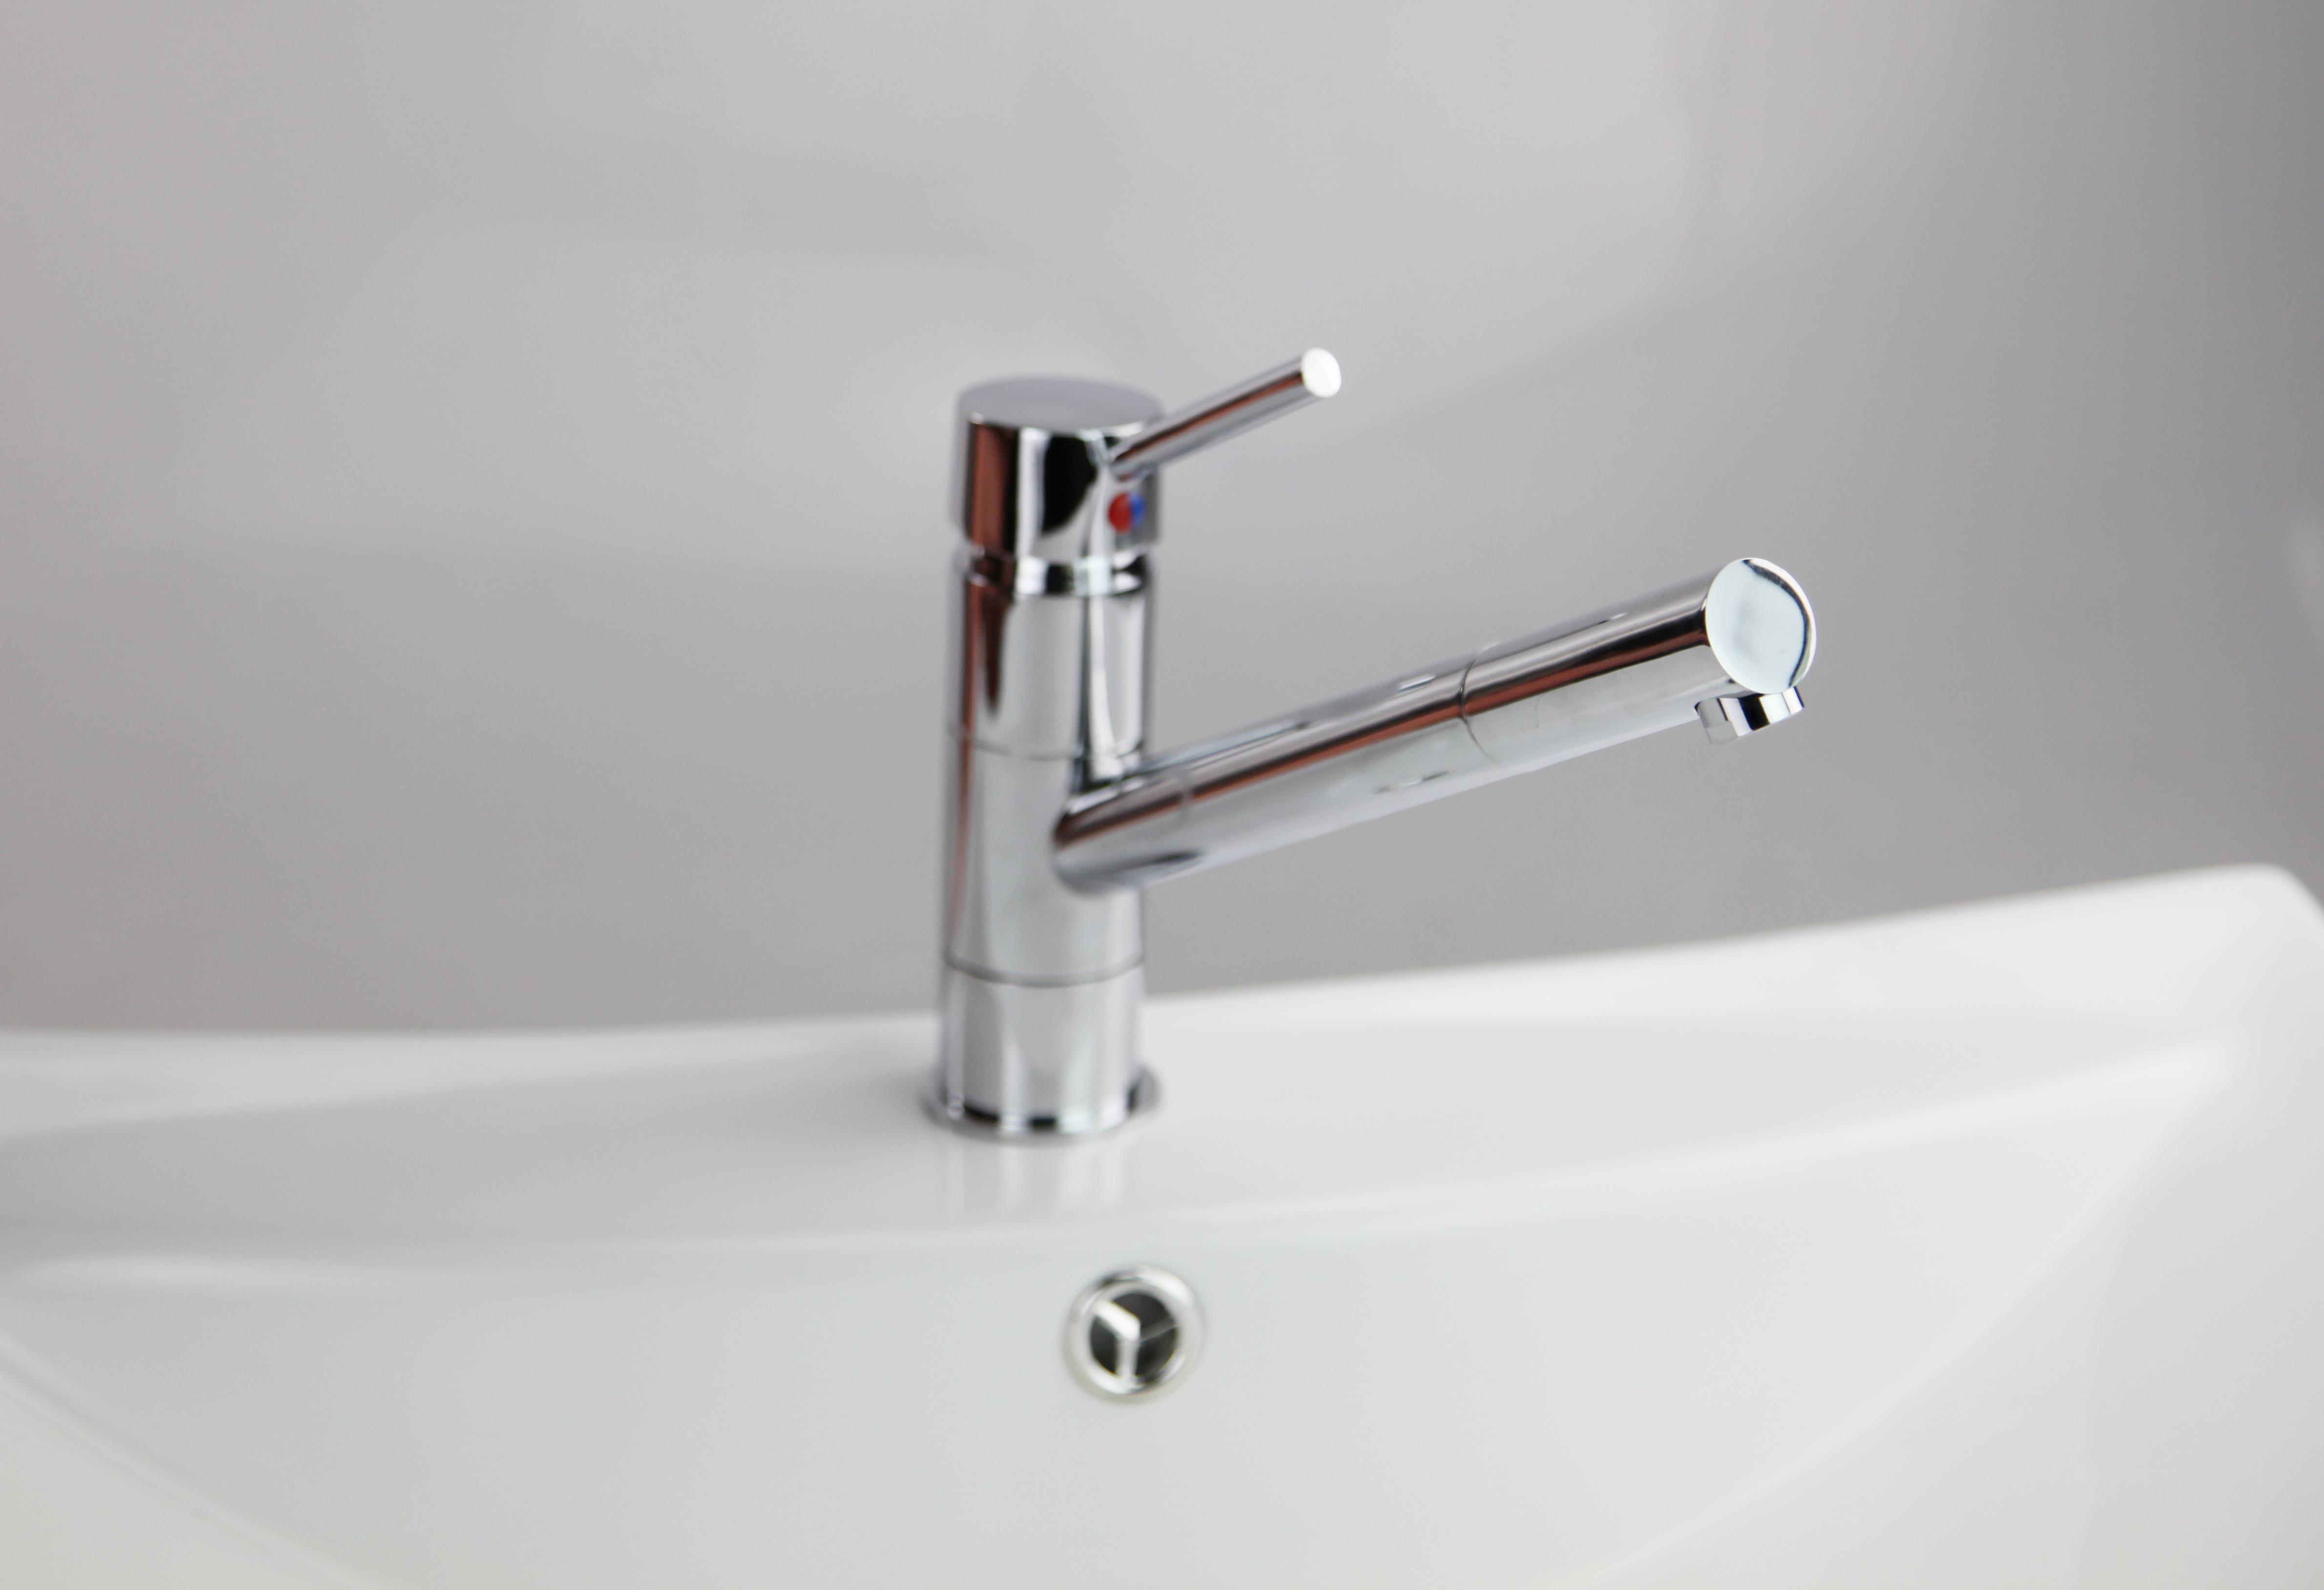 2017 Brand New Concept Kitchen Sink Faucet Mixer Tap Lk0011 From ...